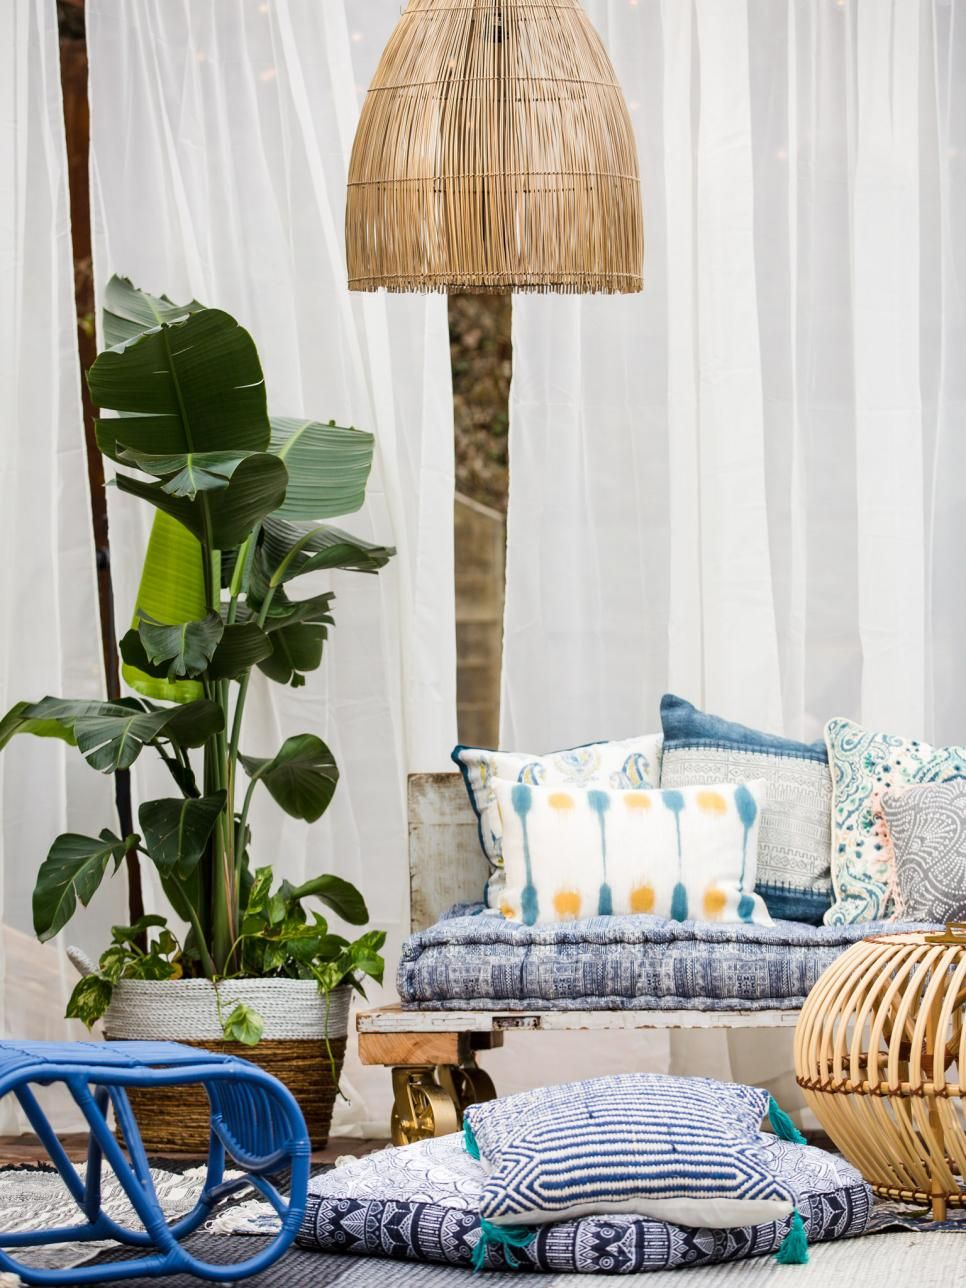 15 Small Patio Decorating Ideas   Small patio, Oasis and Patios